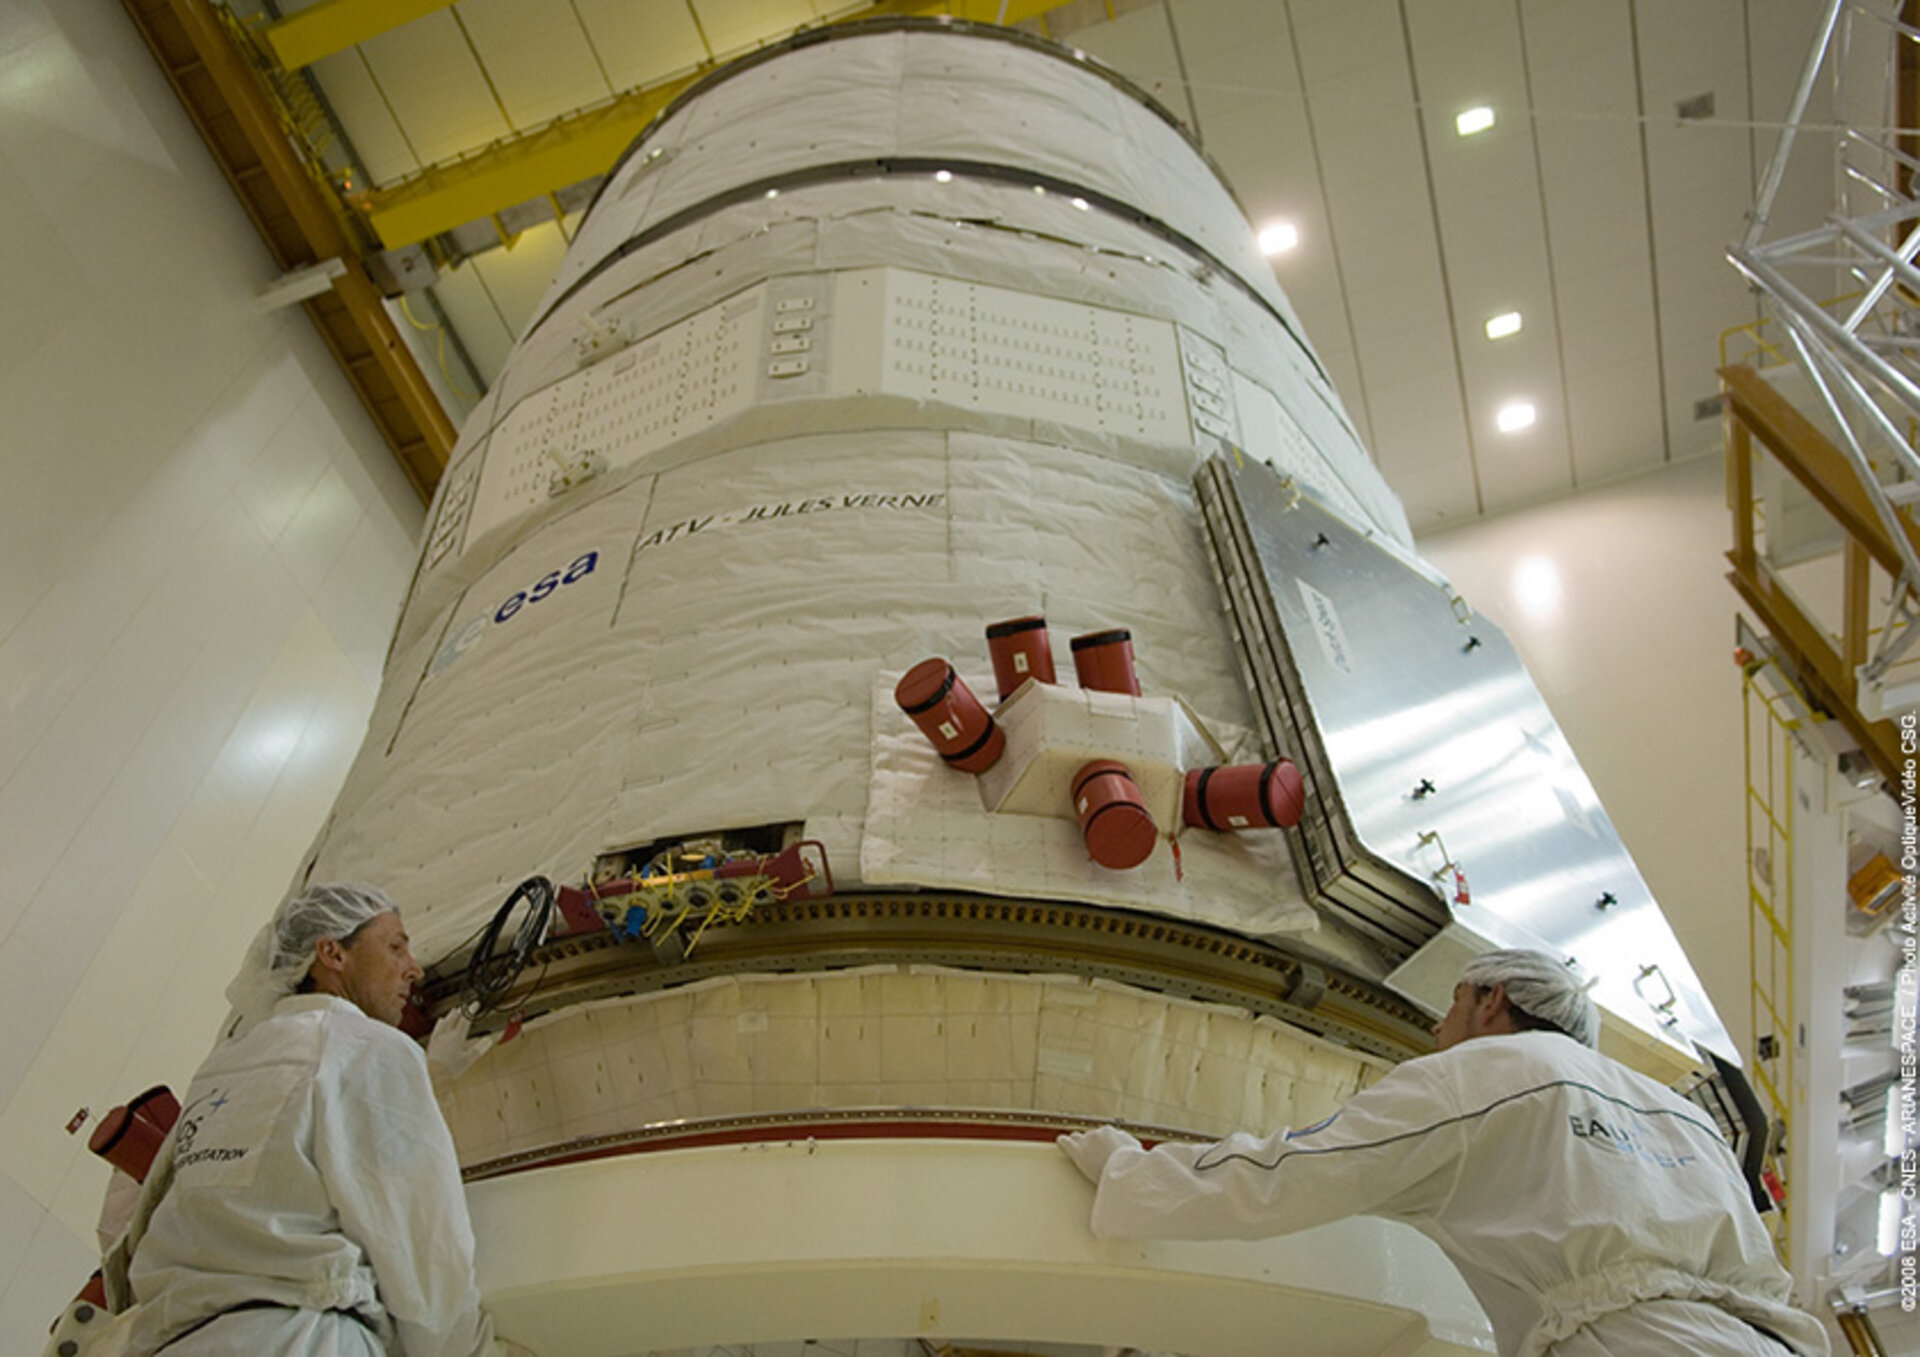 Jules Verne ATV is prepared for launch at Europe's Spaceport in Kourou, French Guiana